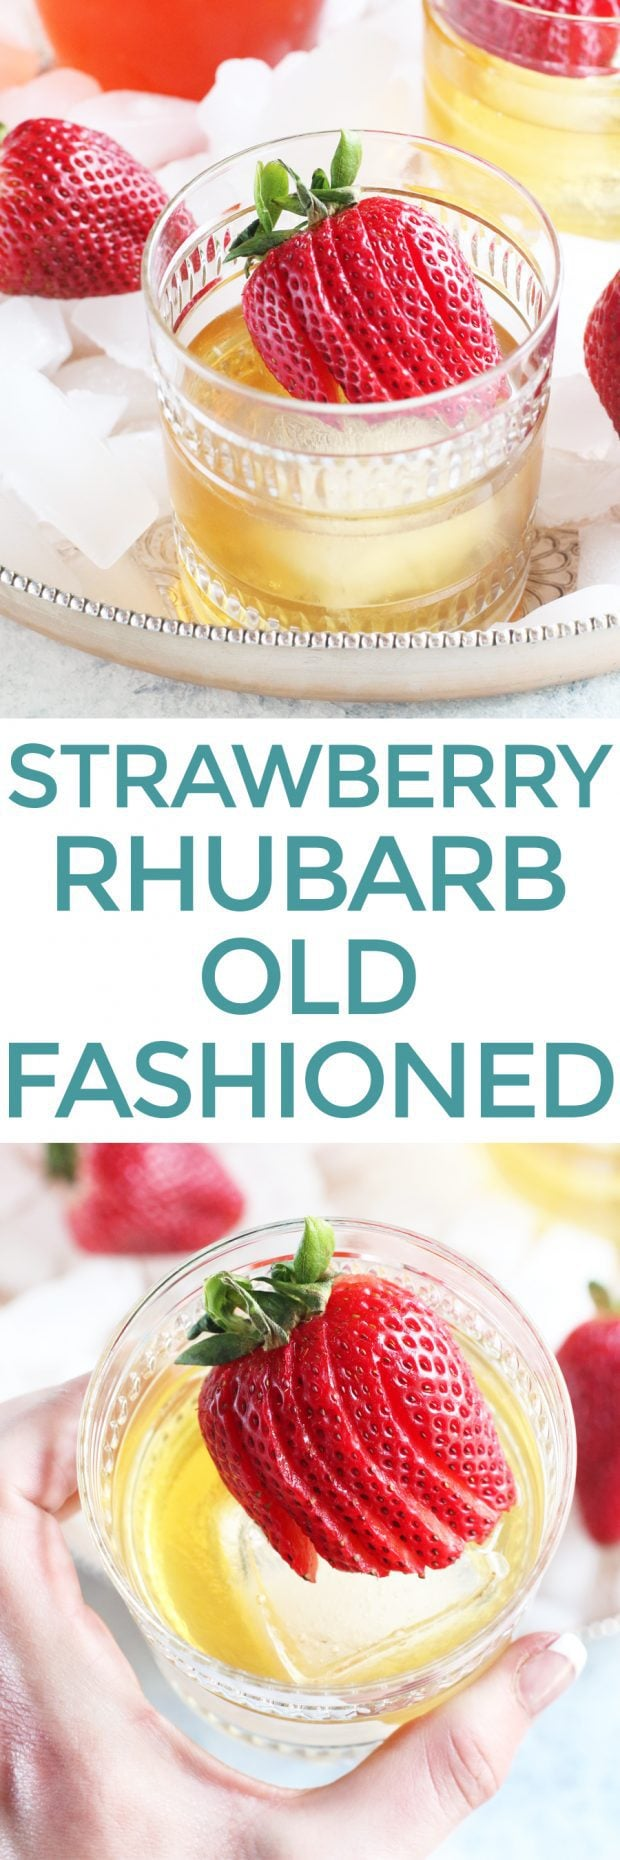 Strawberry Rhubarb Old Fashioned